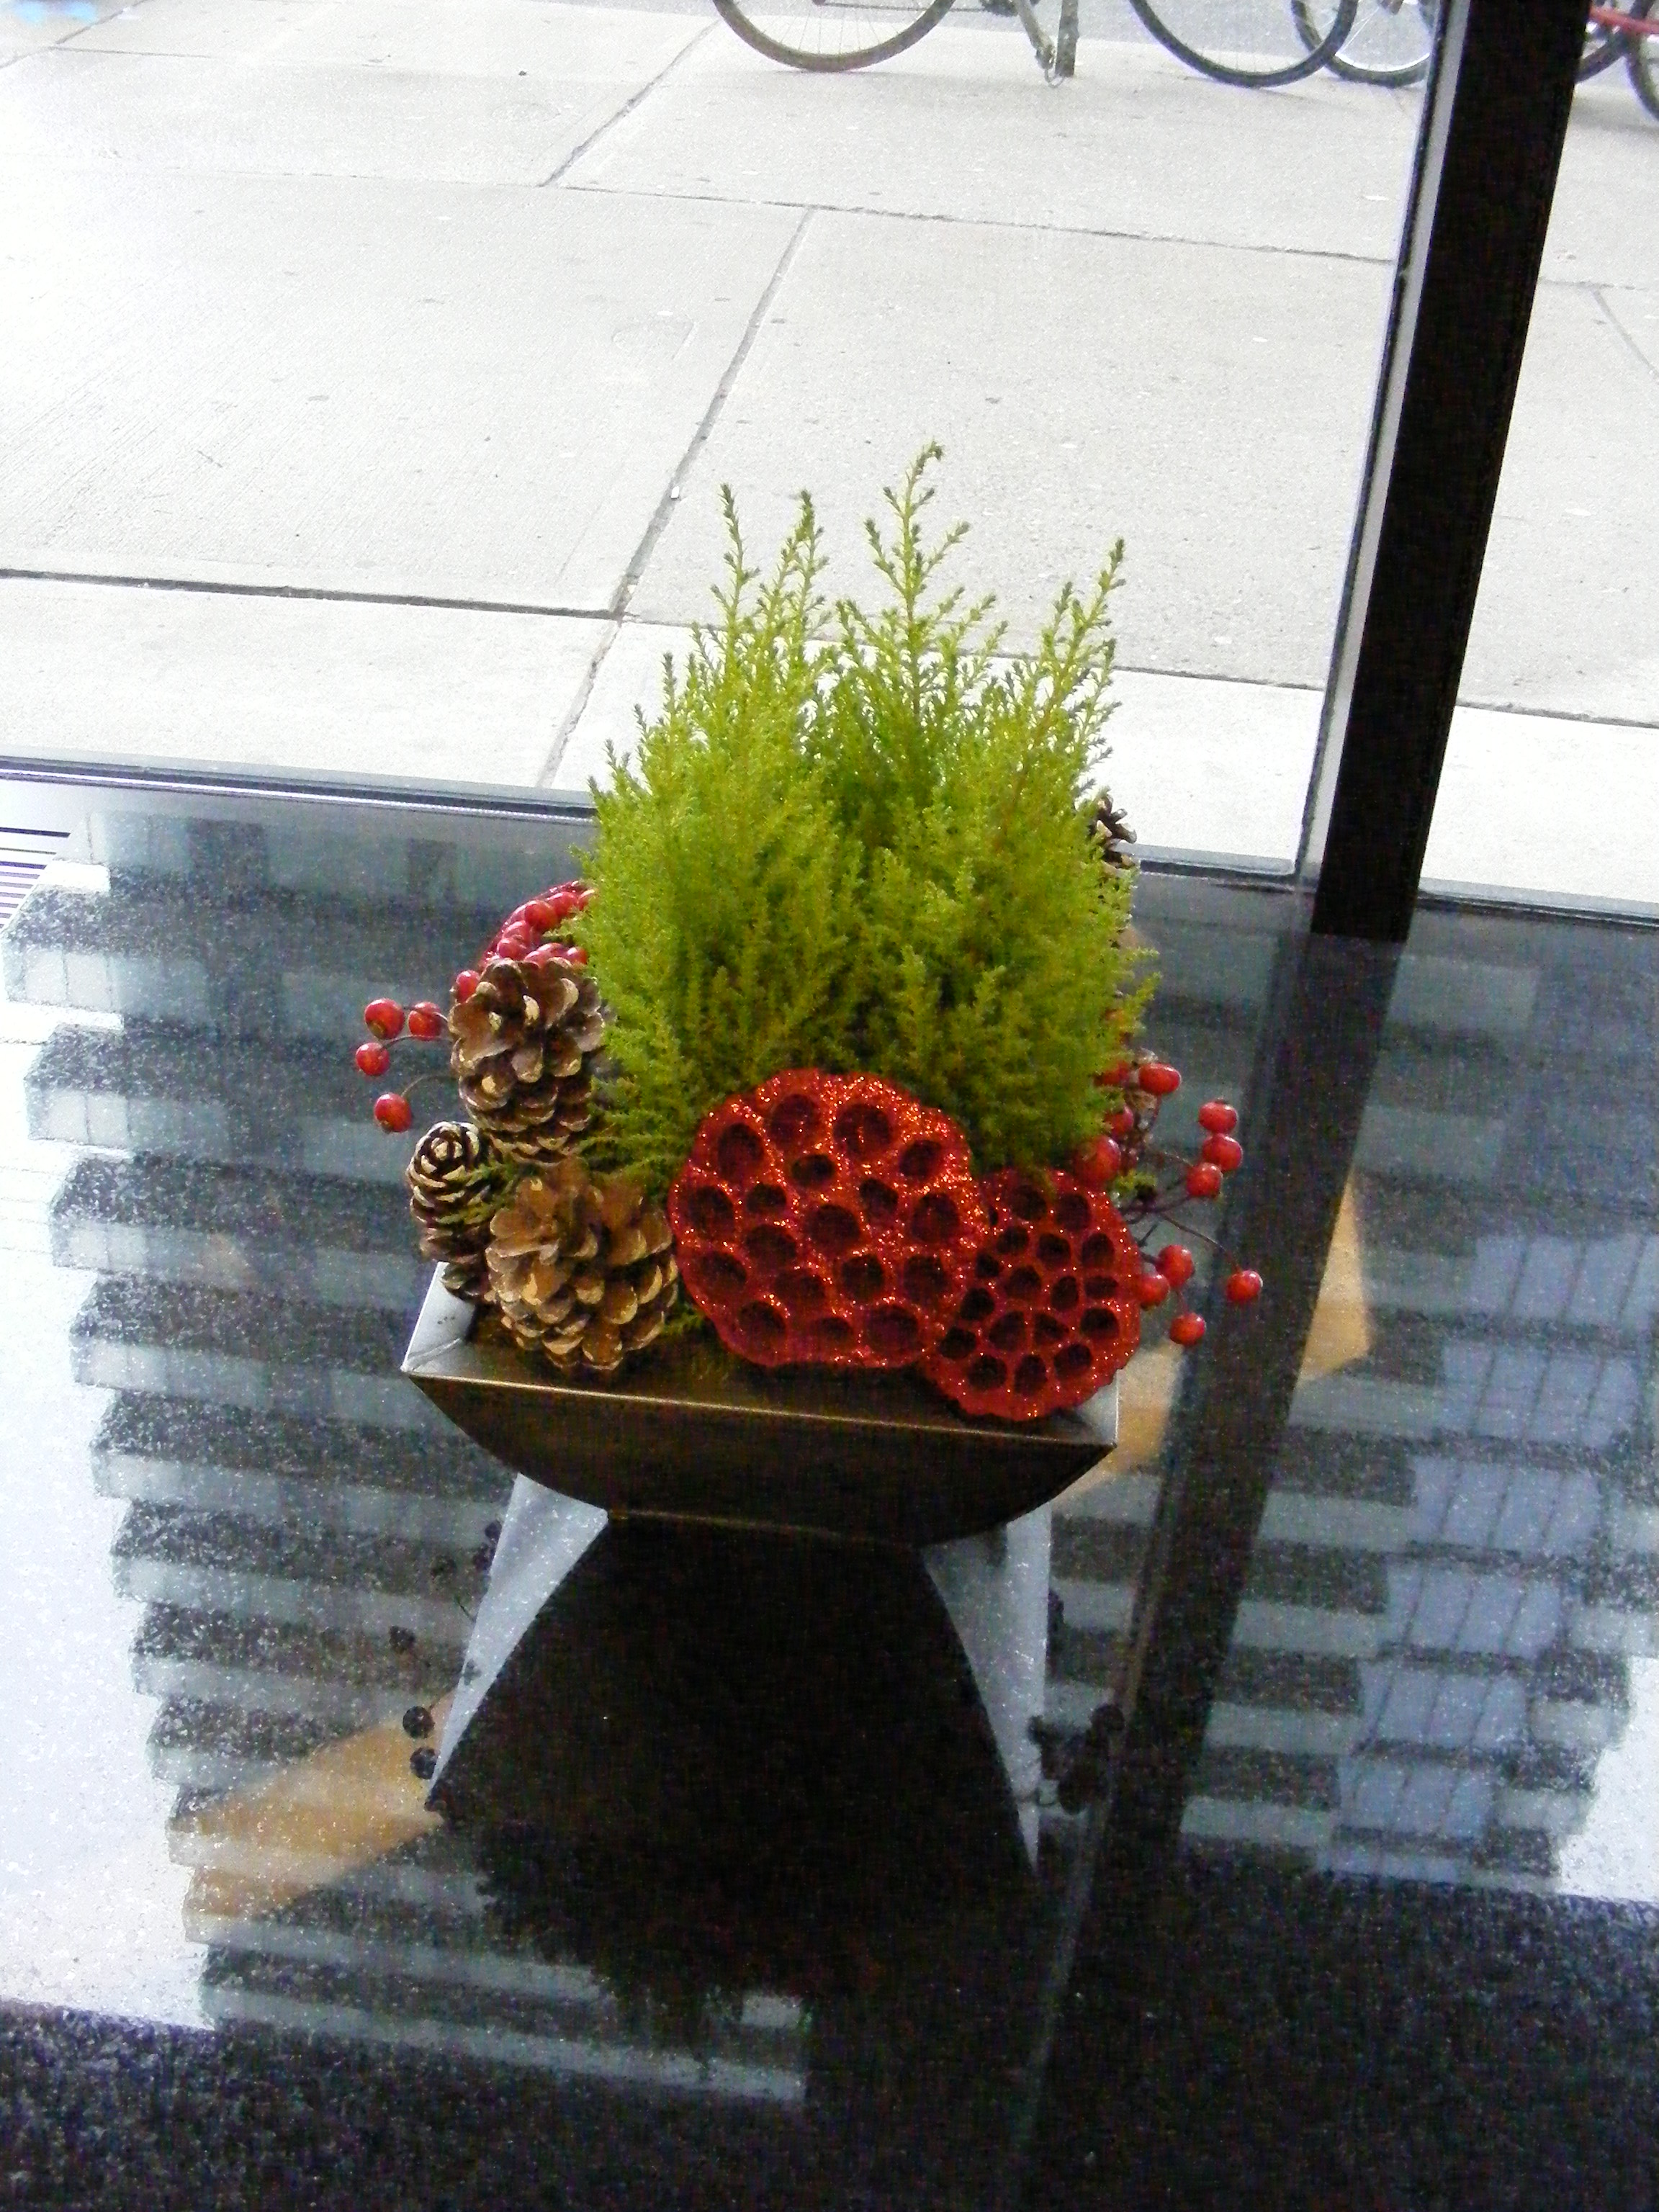 Lobby Arrangements For The Christmas Season Can Be Designed With Live Plants And Flower Or Artificial Flowers These 2 Were